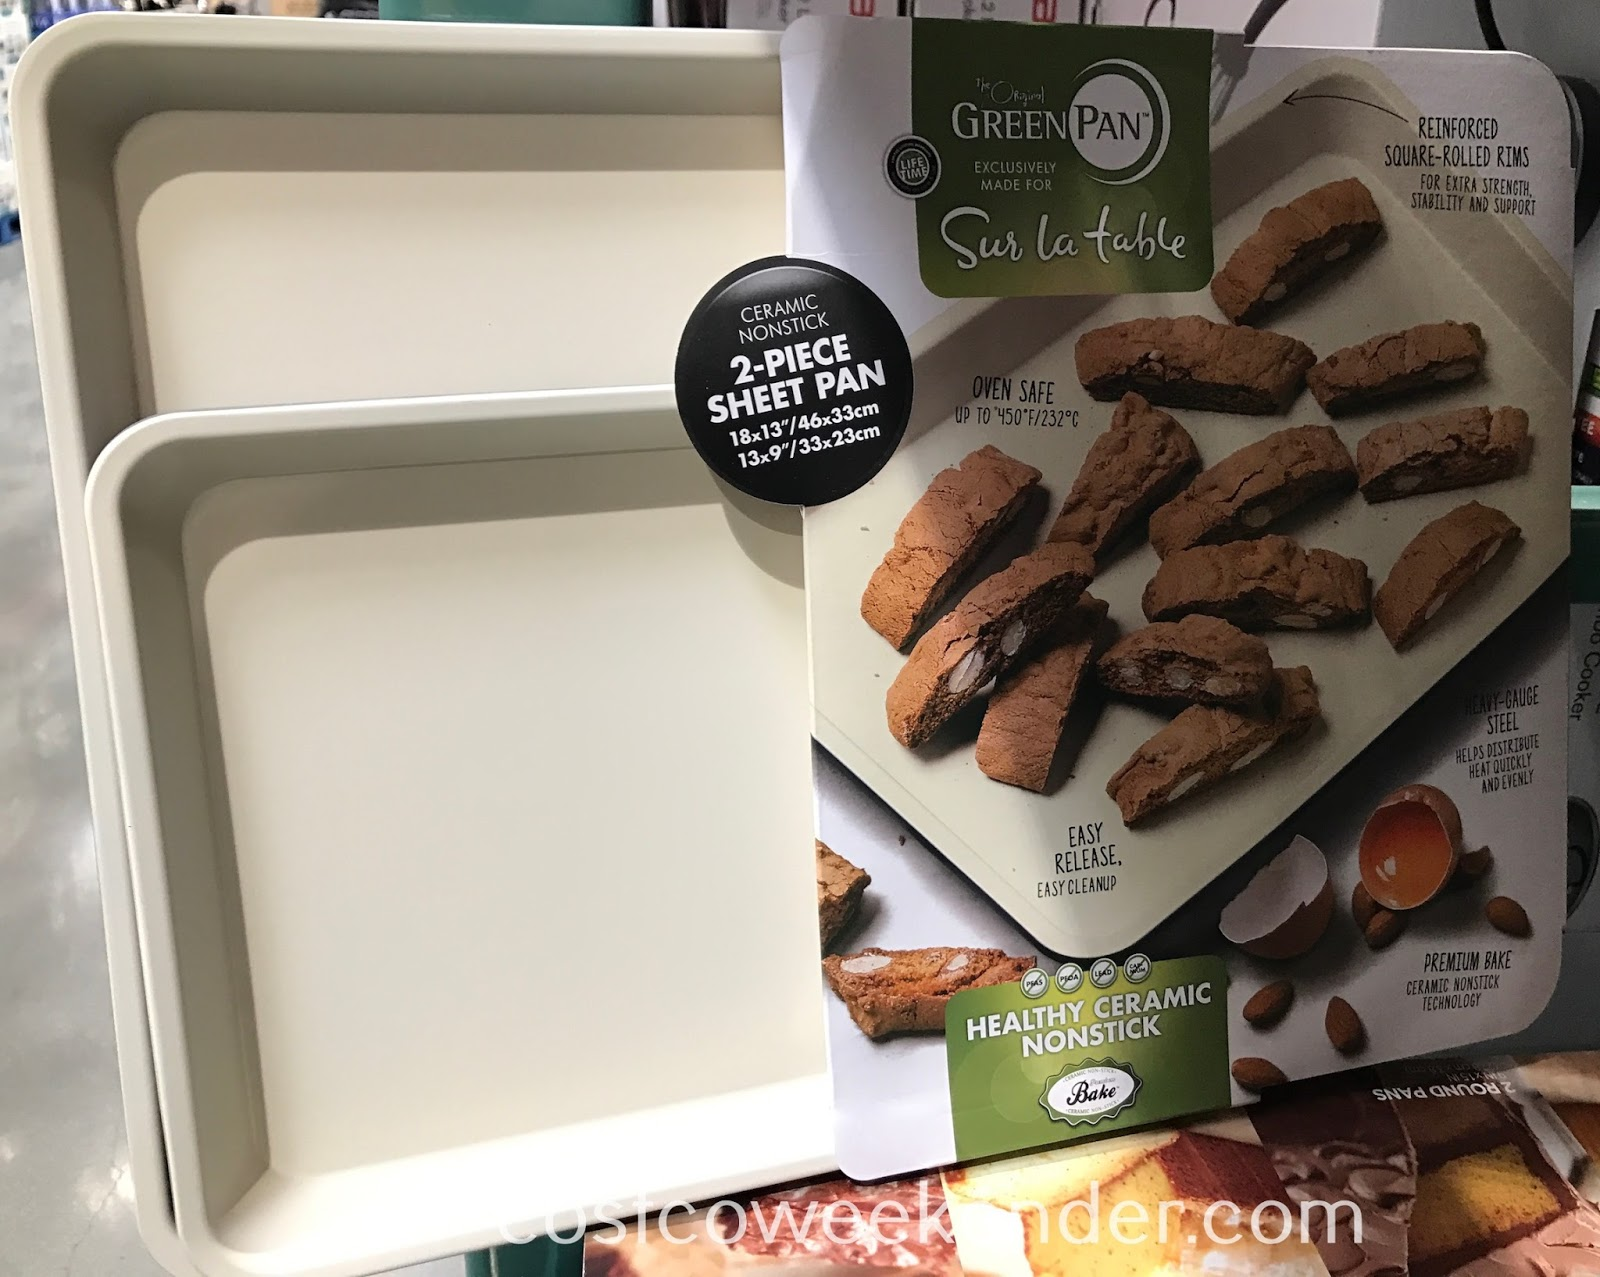 Cook delicious food and get premium results with the GreenPan 2-piece Sheet Pan Set